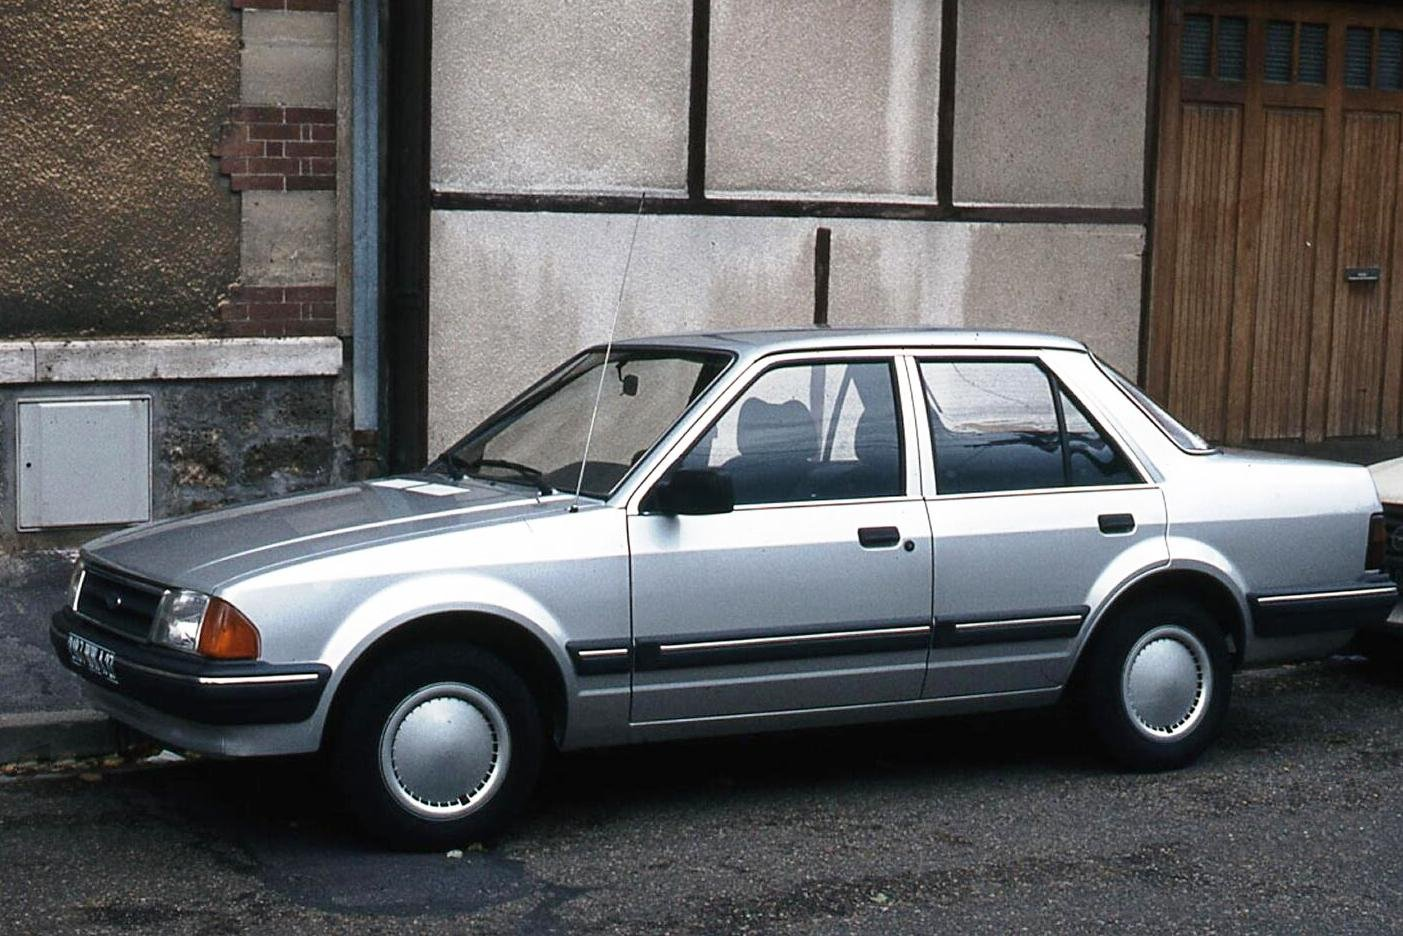 1986 Ford Orion #2